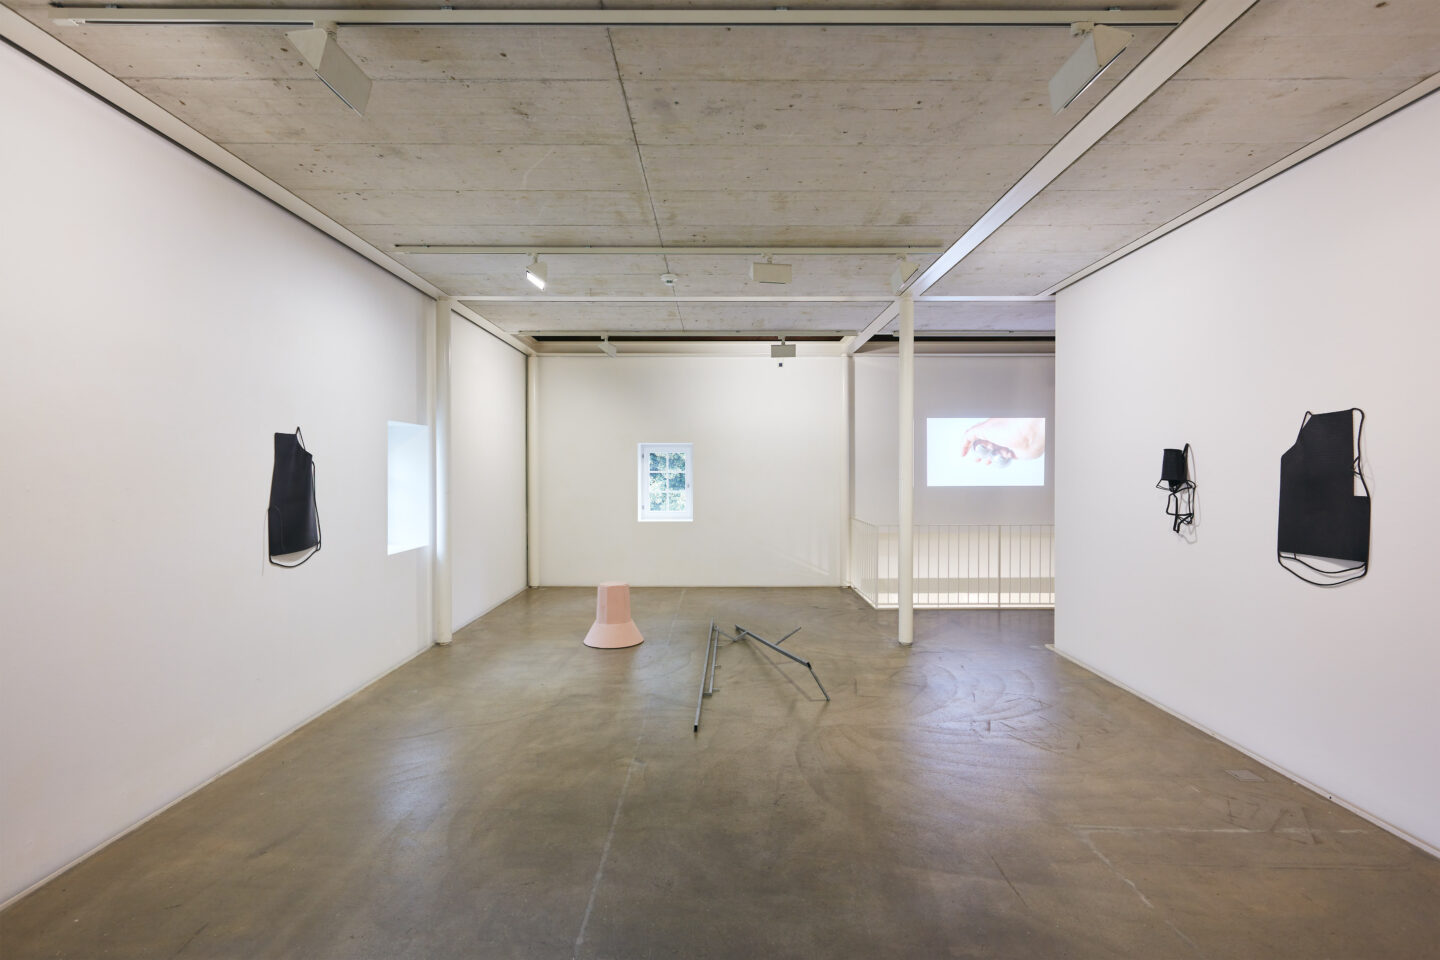 Exhibition View Groupshow «Motor» at Kunstraum Riehen, Riehen, Basel, 2020 / Photo: Moritz Schermbach / Courtesy: the artists